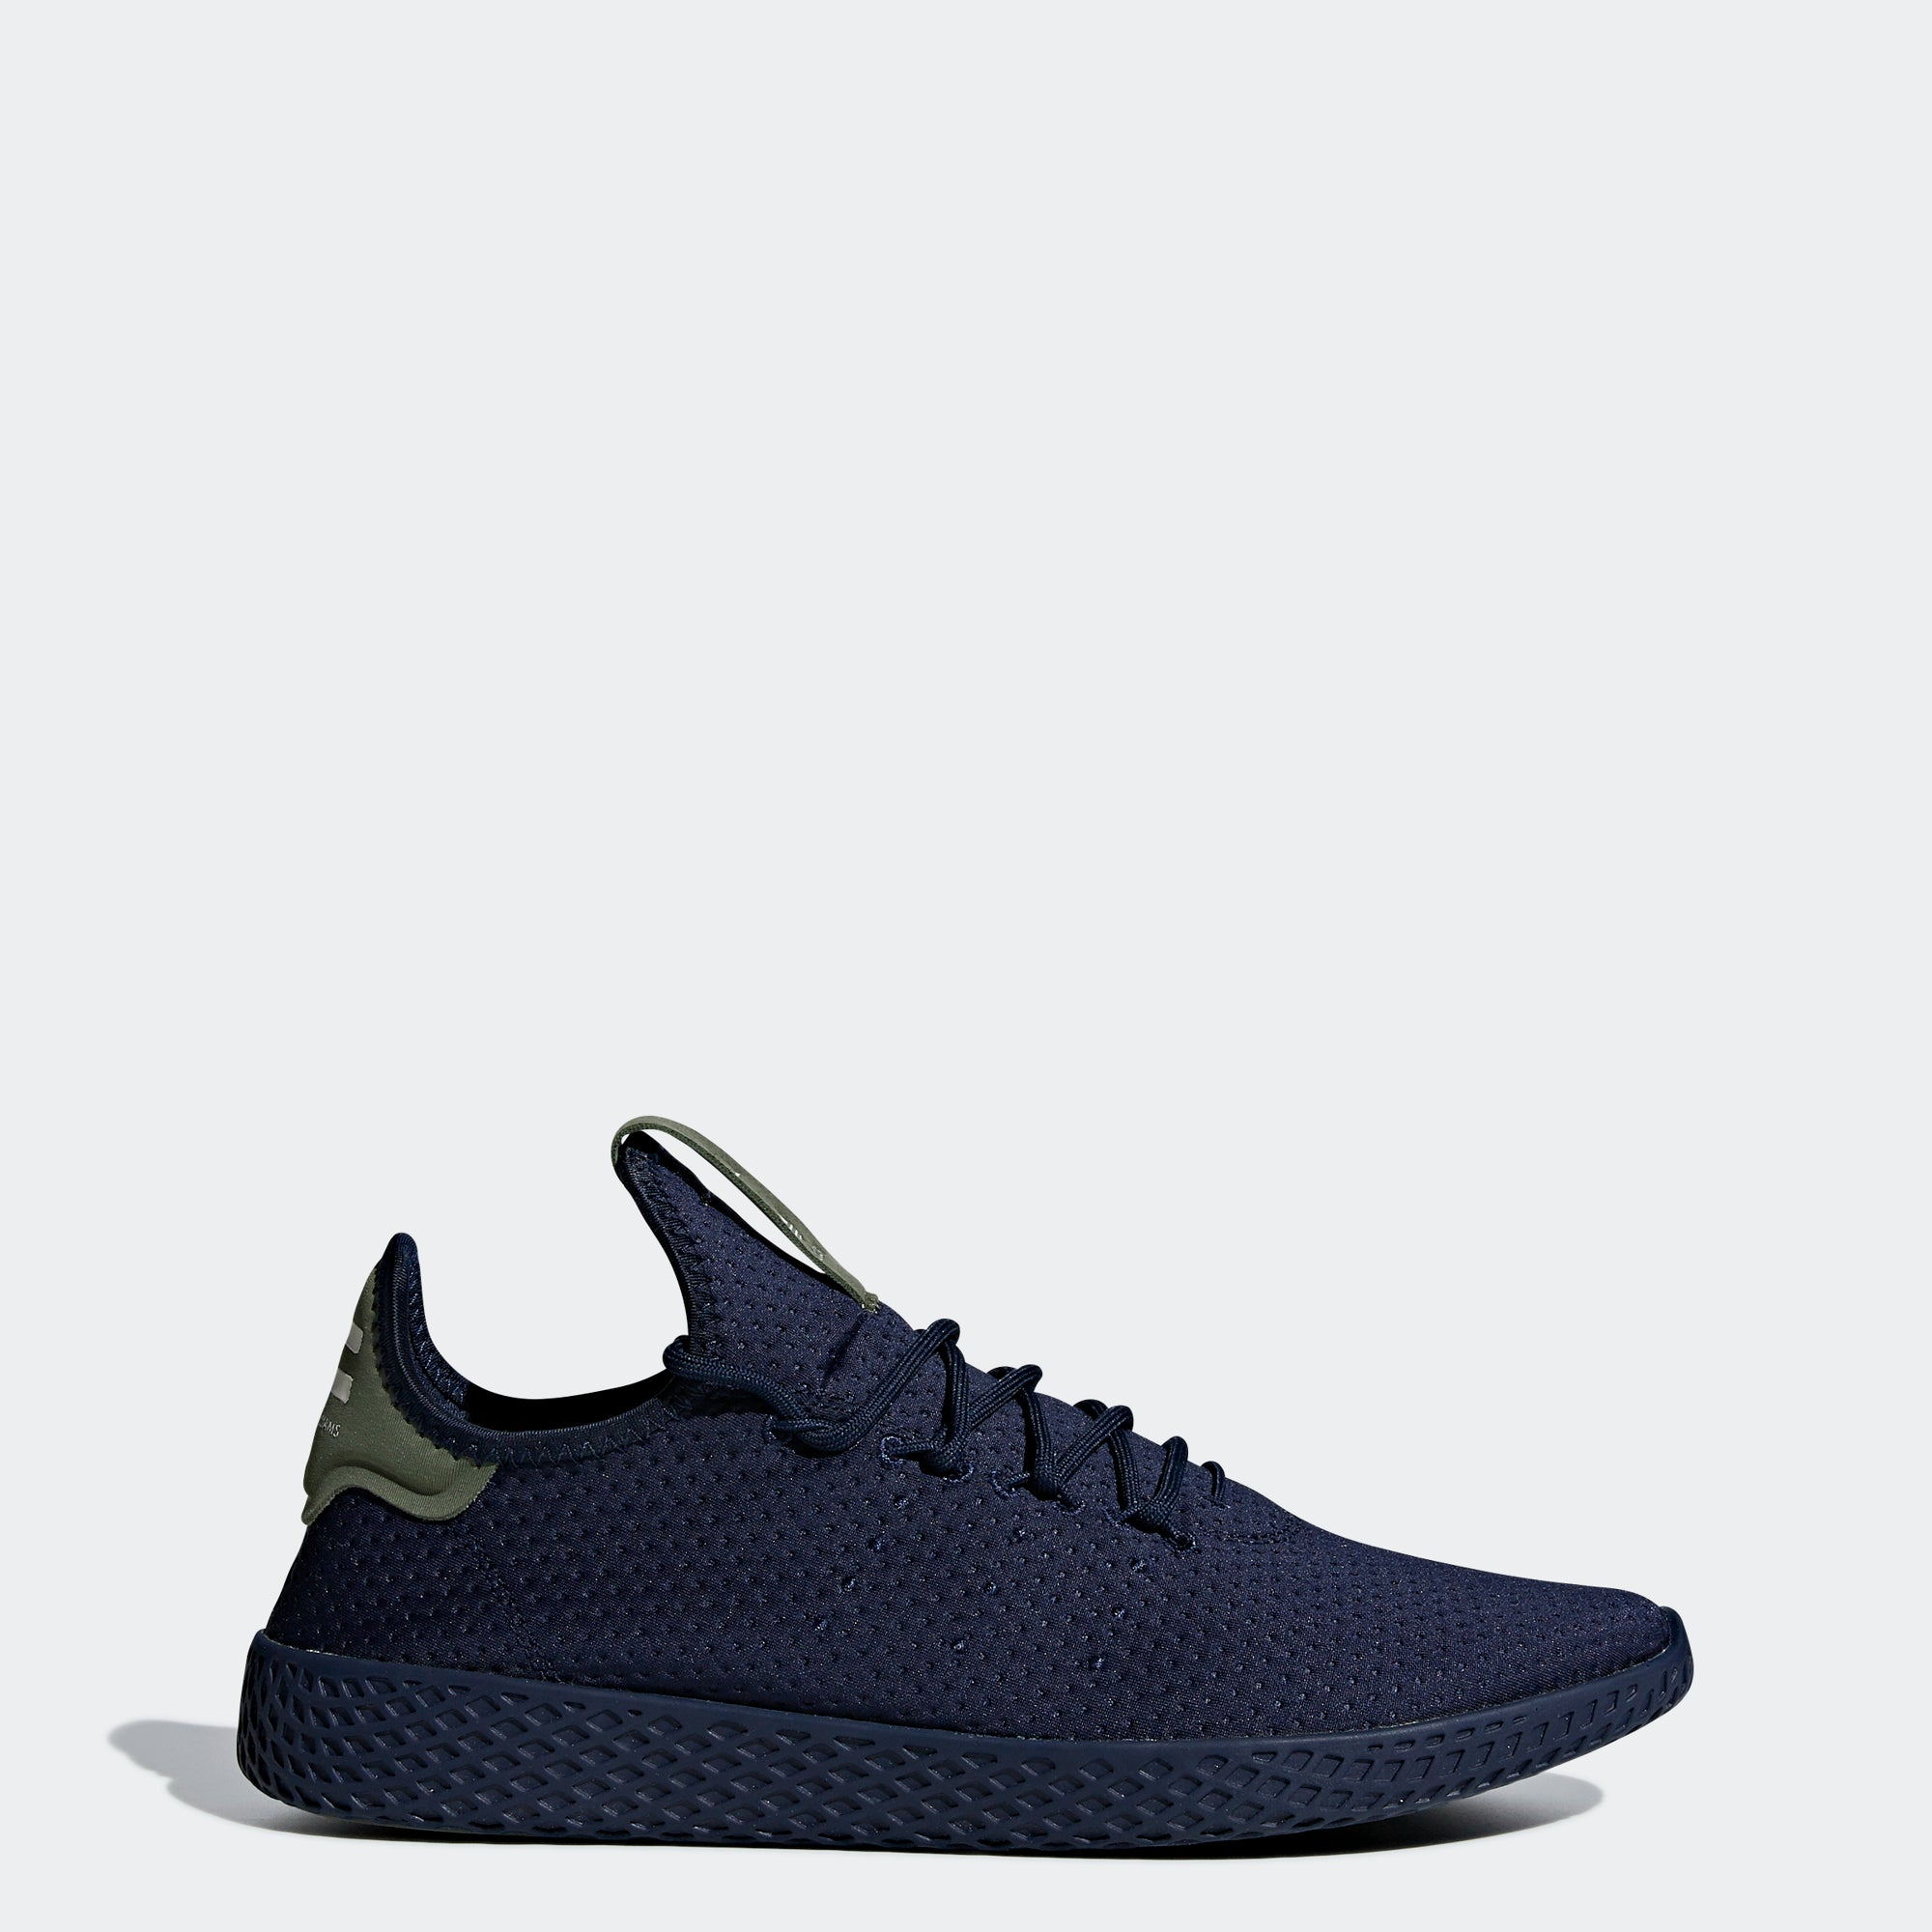 048ae0c429769 Men s adidas Originals Pharrell Williams Tennis Hu Shoes Collegiate Navy